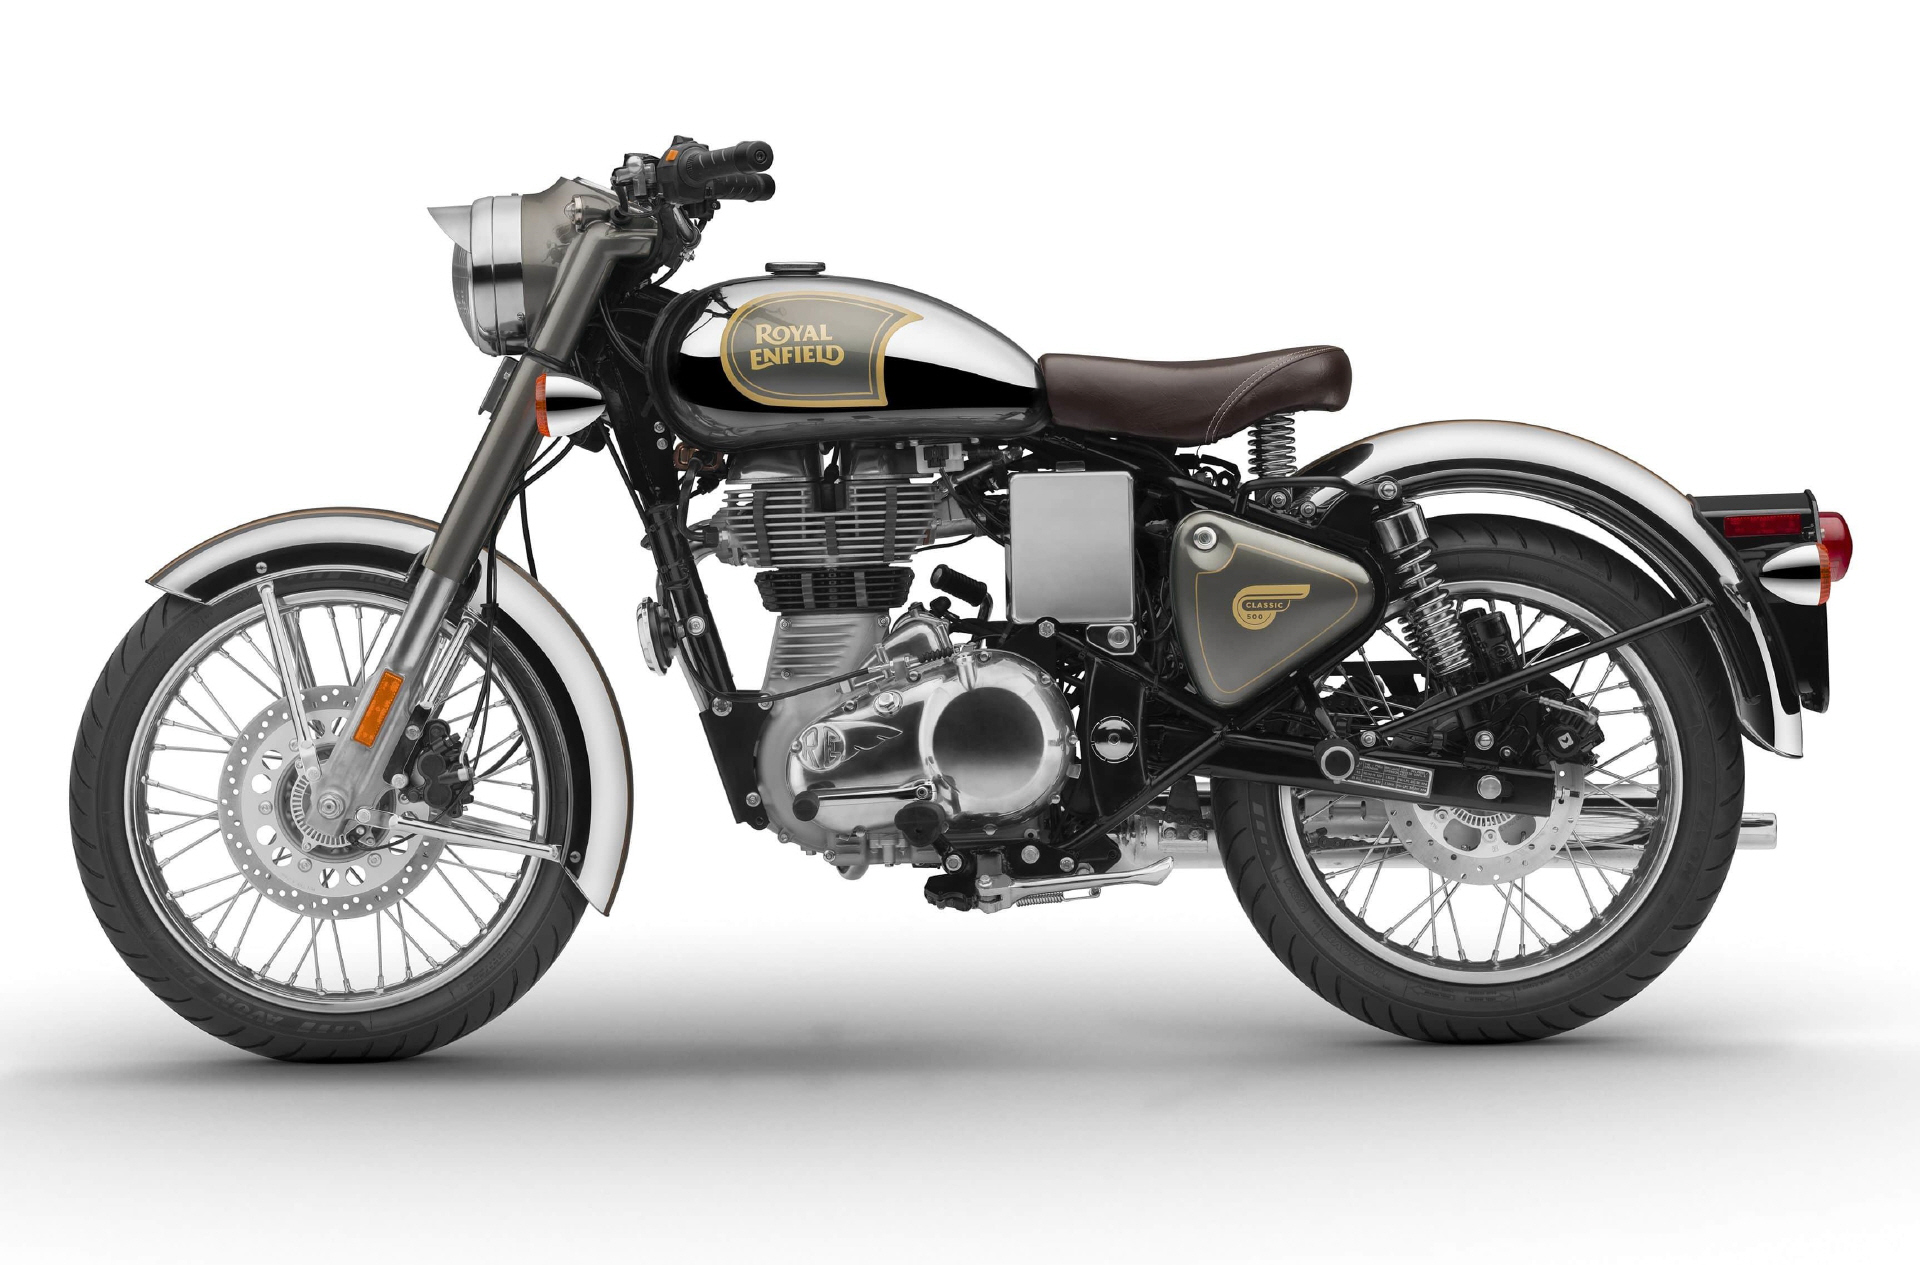 royalenfield_classic_chrome_graphite_05jpg